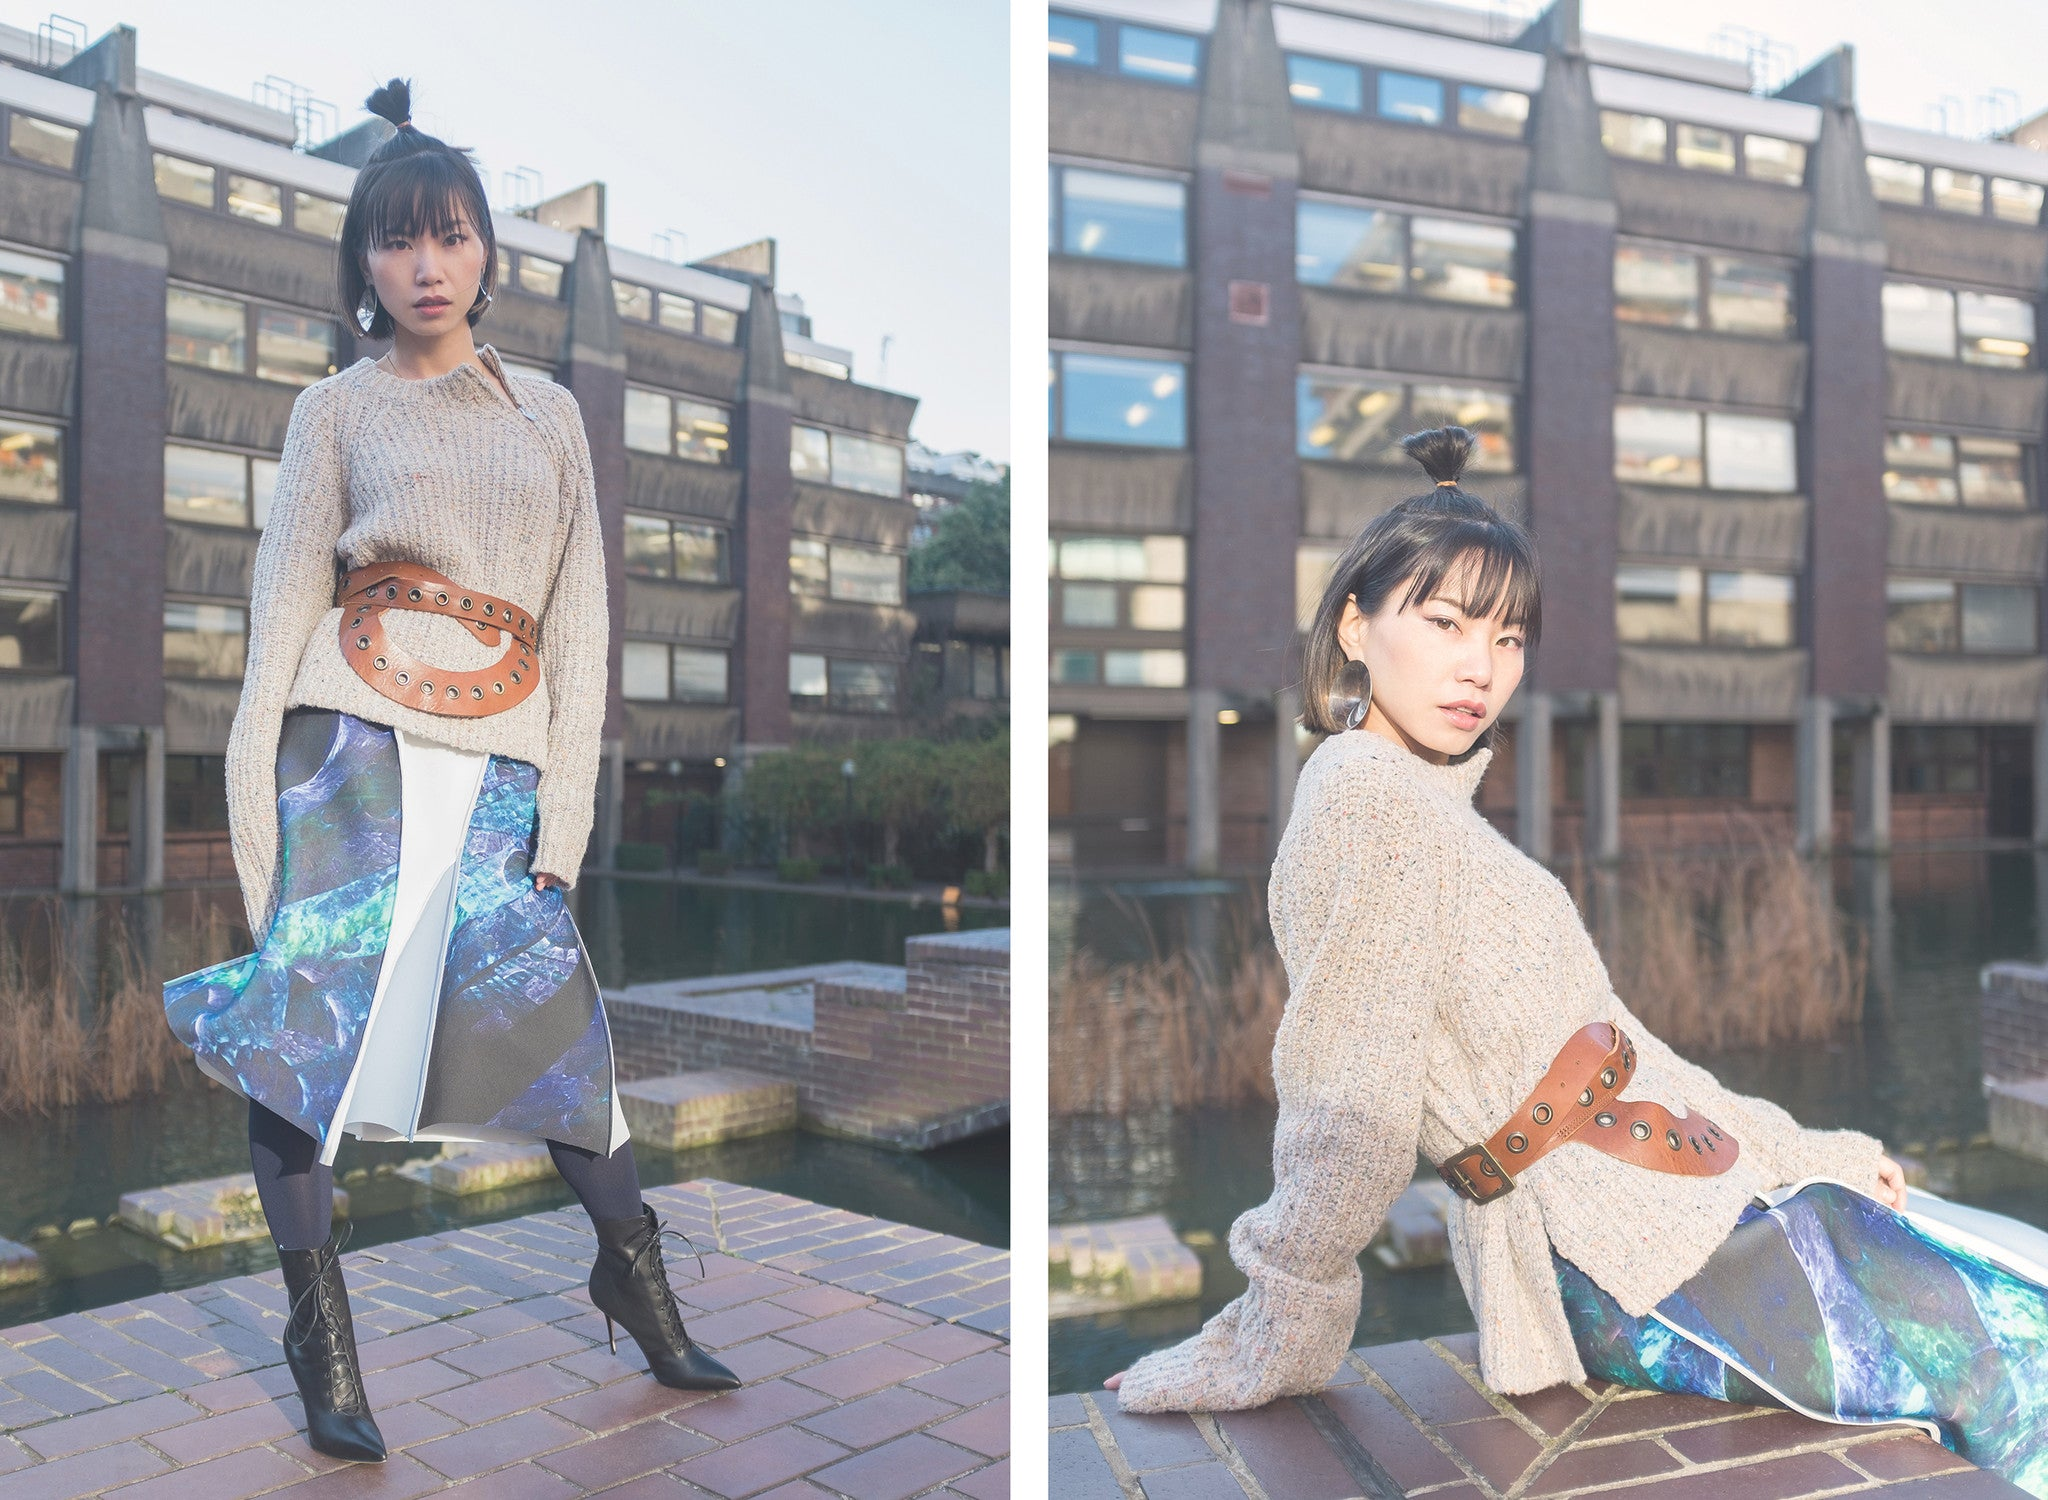 Starry night - New collection by designer YUAN | On Slowness blog